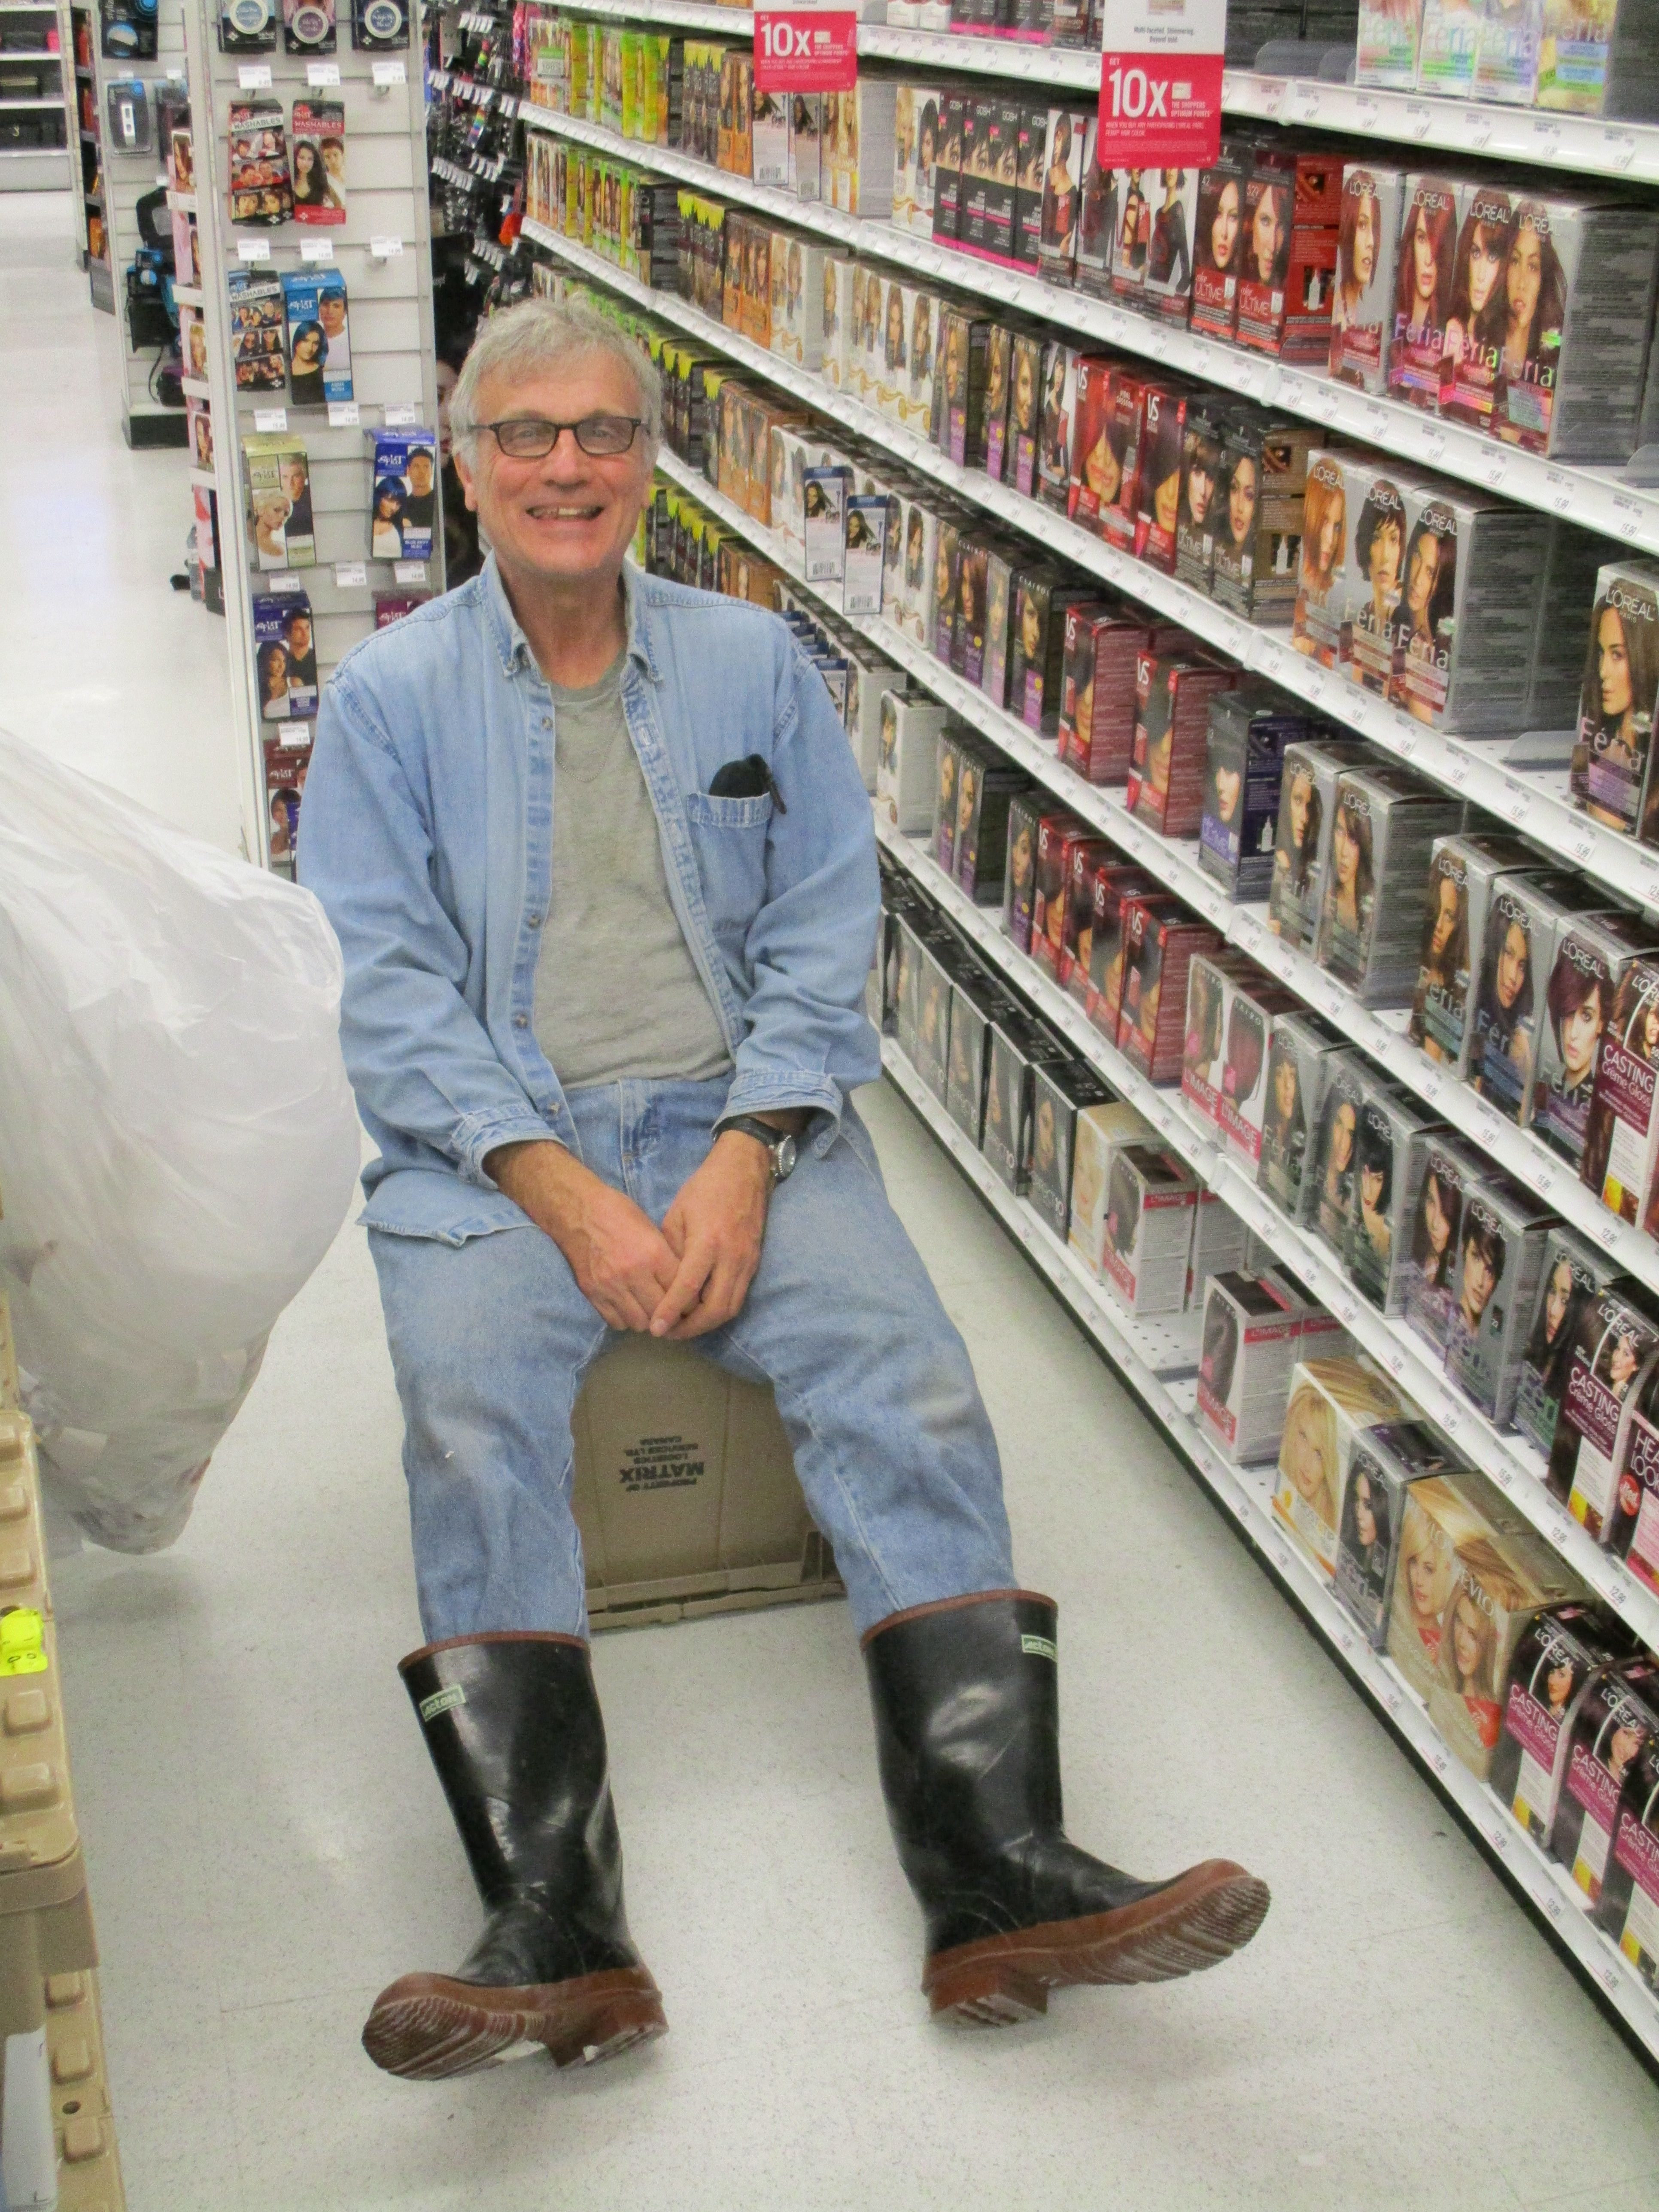 THE CANADIAN TUXEDO: the perfect working man's outfit [RUBBER BOOTS optional]